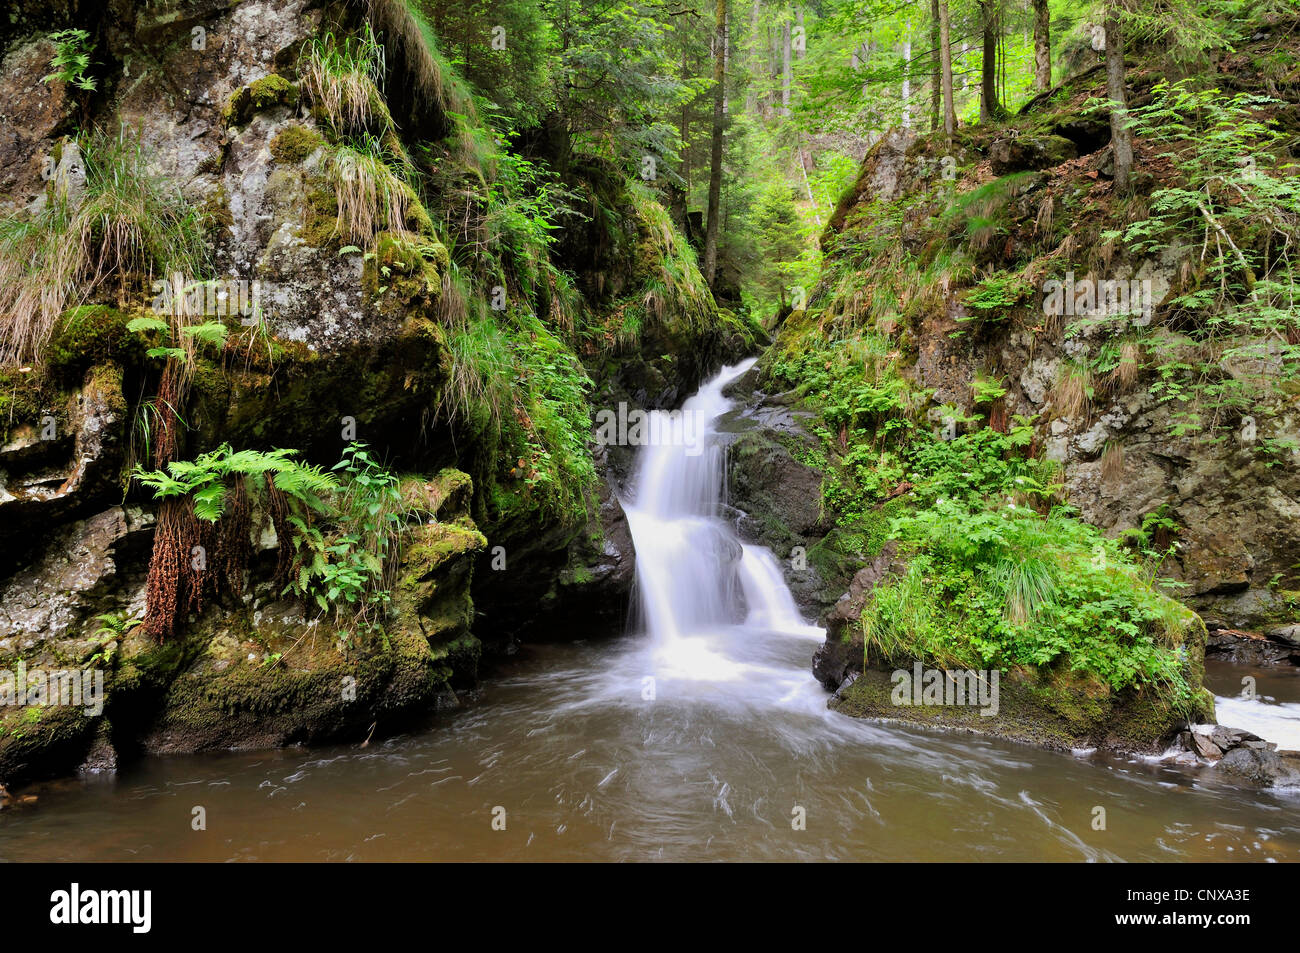 wasserfall in die schlucht hoellental deutschland baden w rttemberg schwarzwald stockfoto. Black Bedroom Furniture Sets. Home Design Ideas